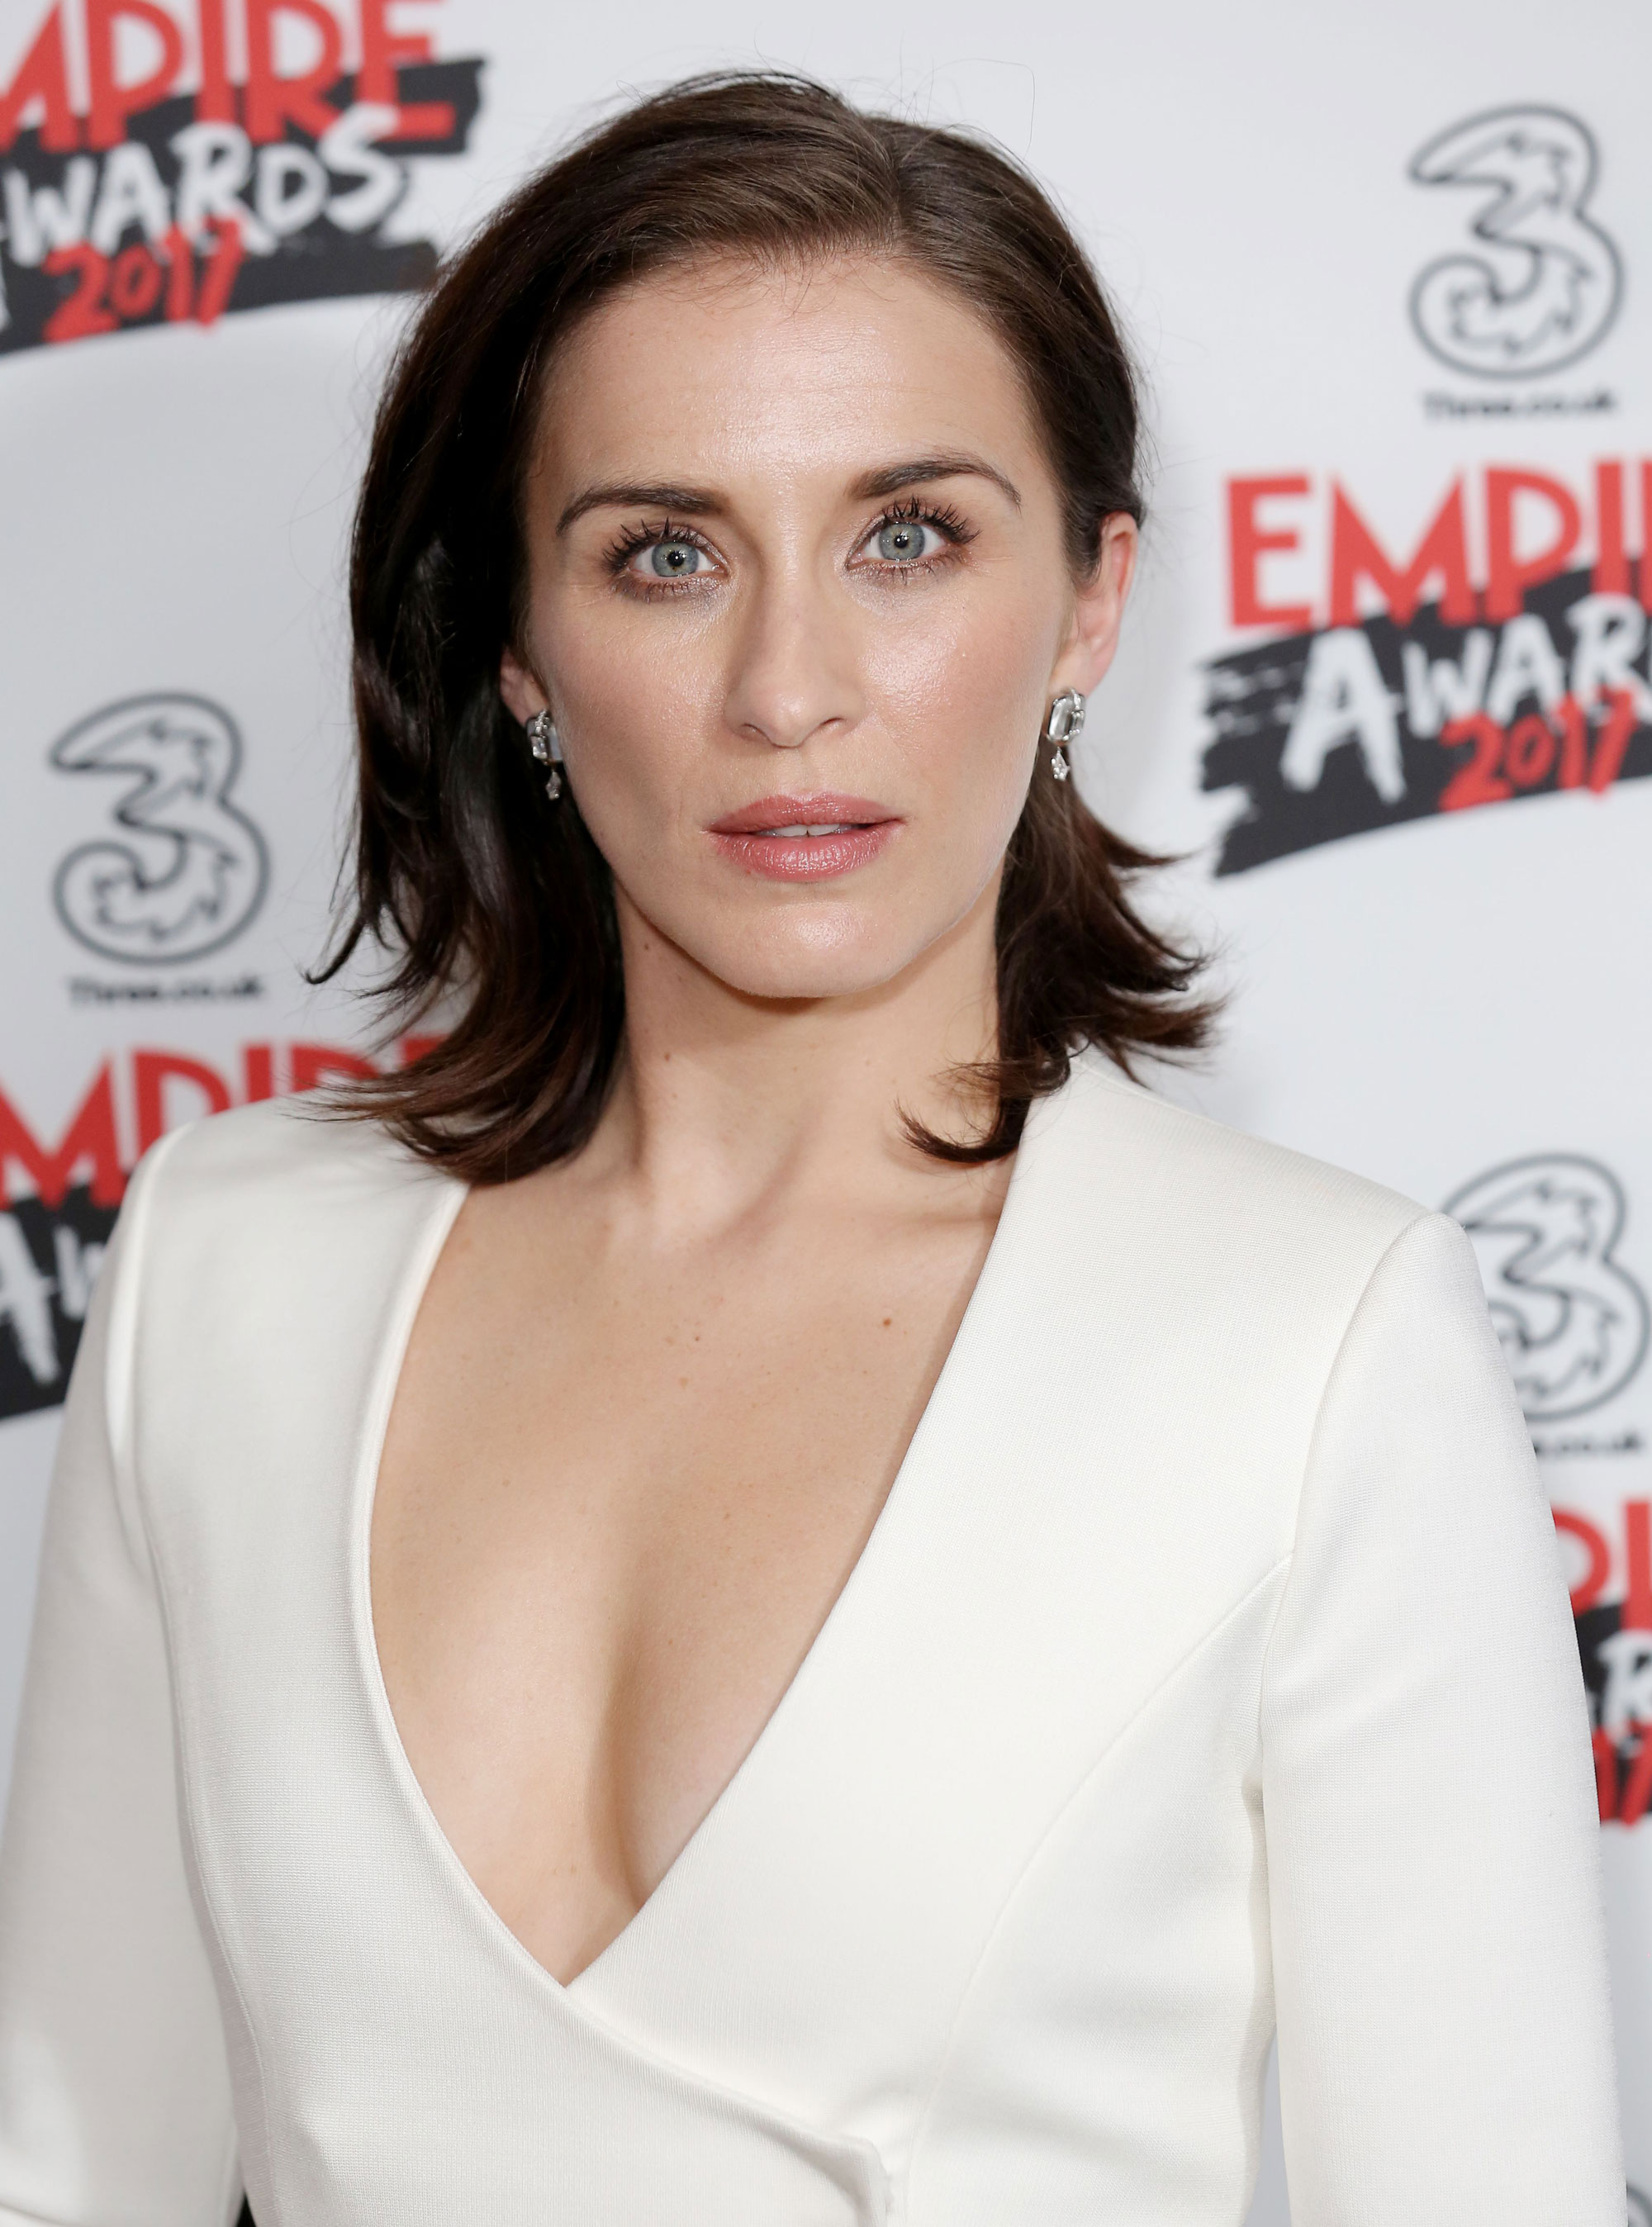 vicky mcclure johnny owenvicky mcclure gif, vicky mcclure instagram, vicky mcclure, vicky mcclure husband, vicky mcclure feet, vicky mcclure boyfriend, vicky mcclure this is england, vicky mcclure married, vicky mcclure johnny owen, vicky mcclure actress, vicky mcclure joe gilgun, vicky mcclure lol, vicky mcclure and joseph gilgun, vicky mcclure twitter, vicky mcclure broadchurch, vicky mcclure partner, vicky mcclure imdb, vicky mcclure hot, vicky mcclure gay